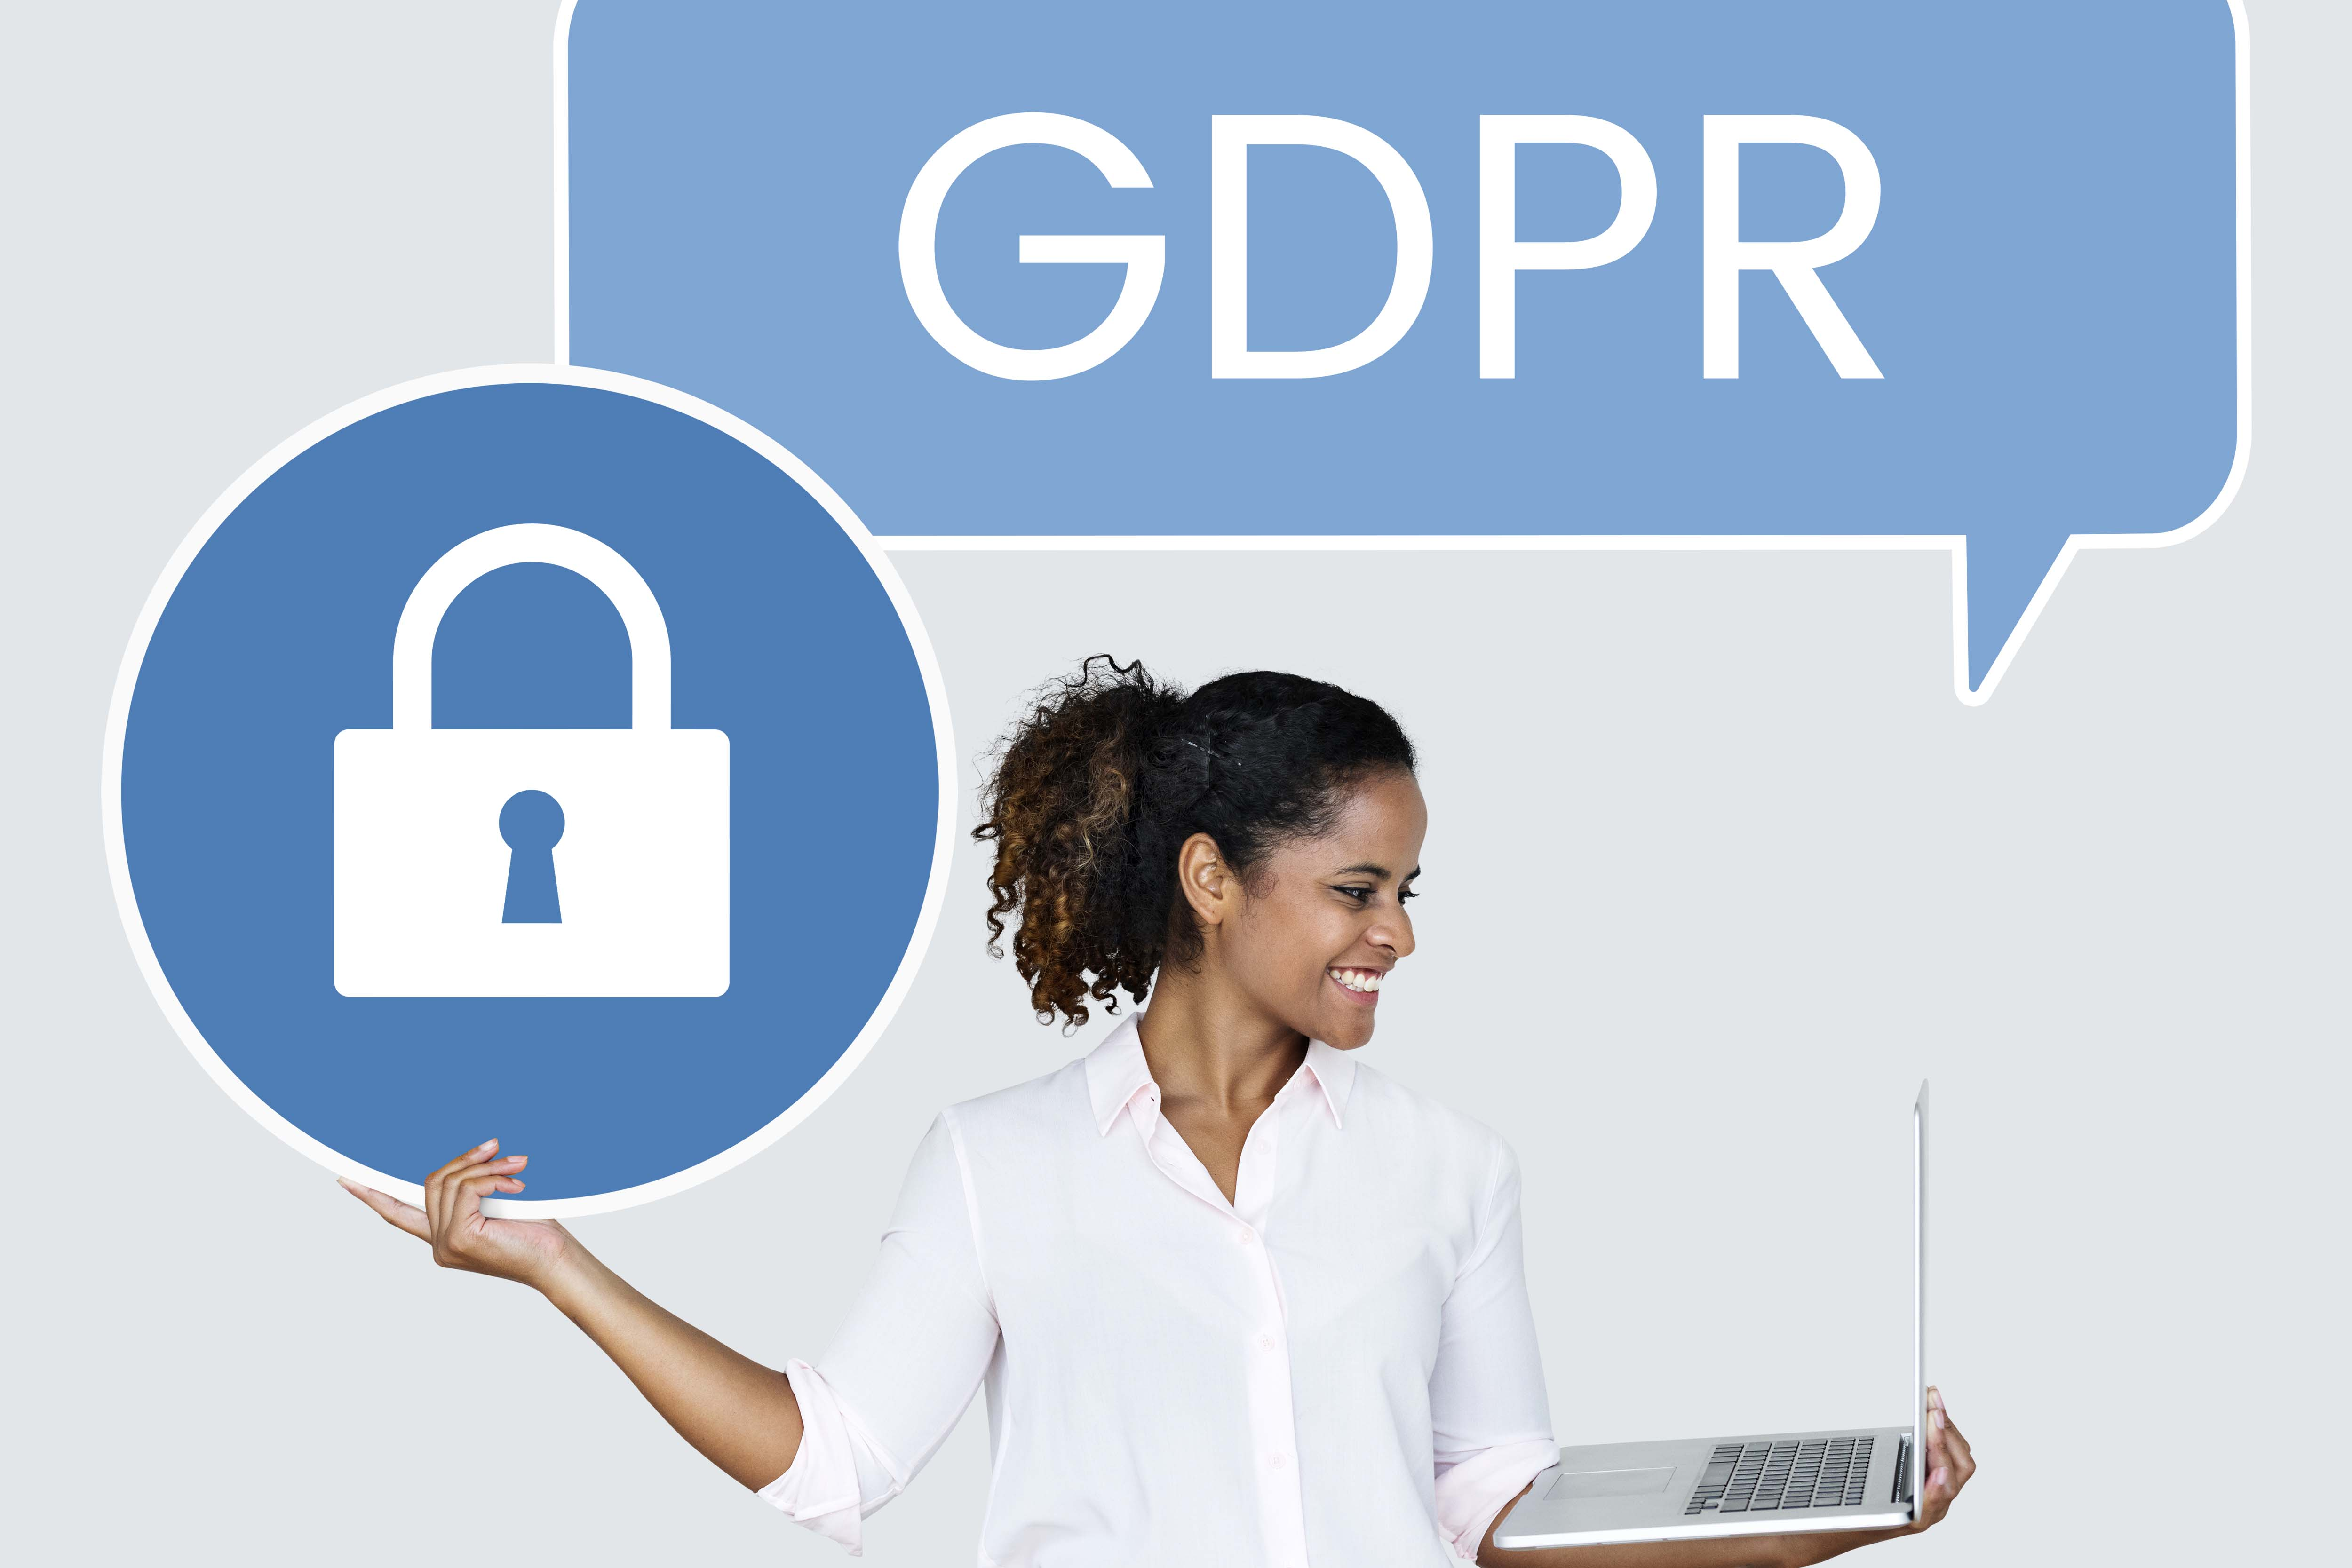 GDPR and data security